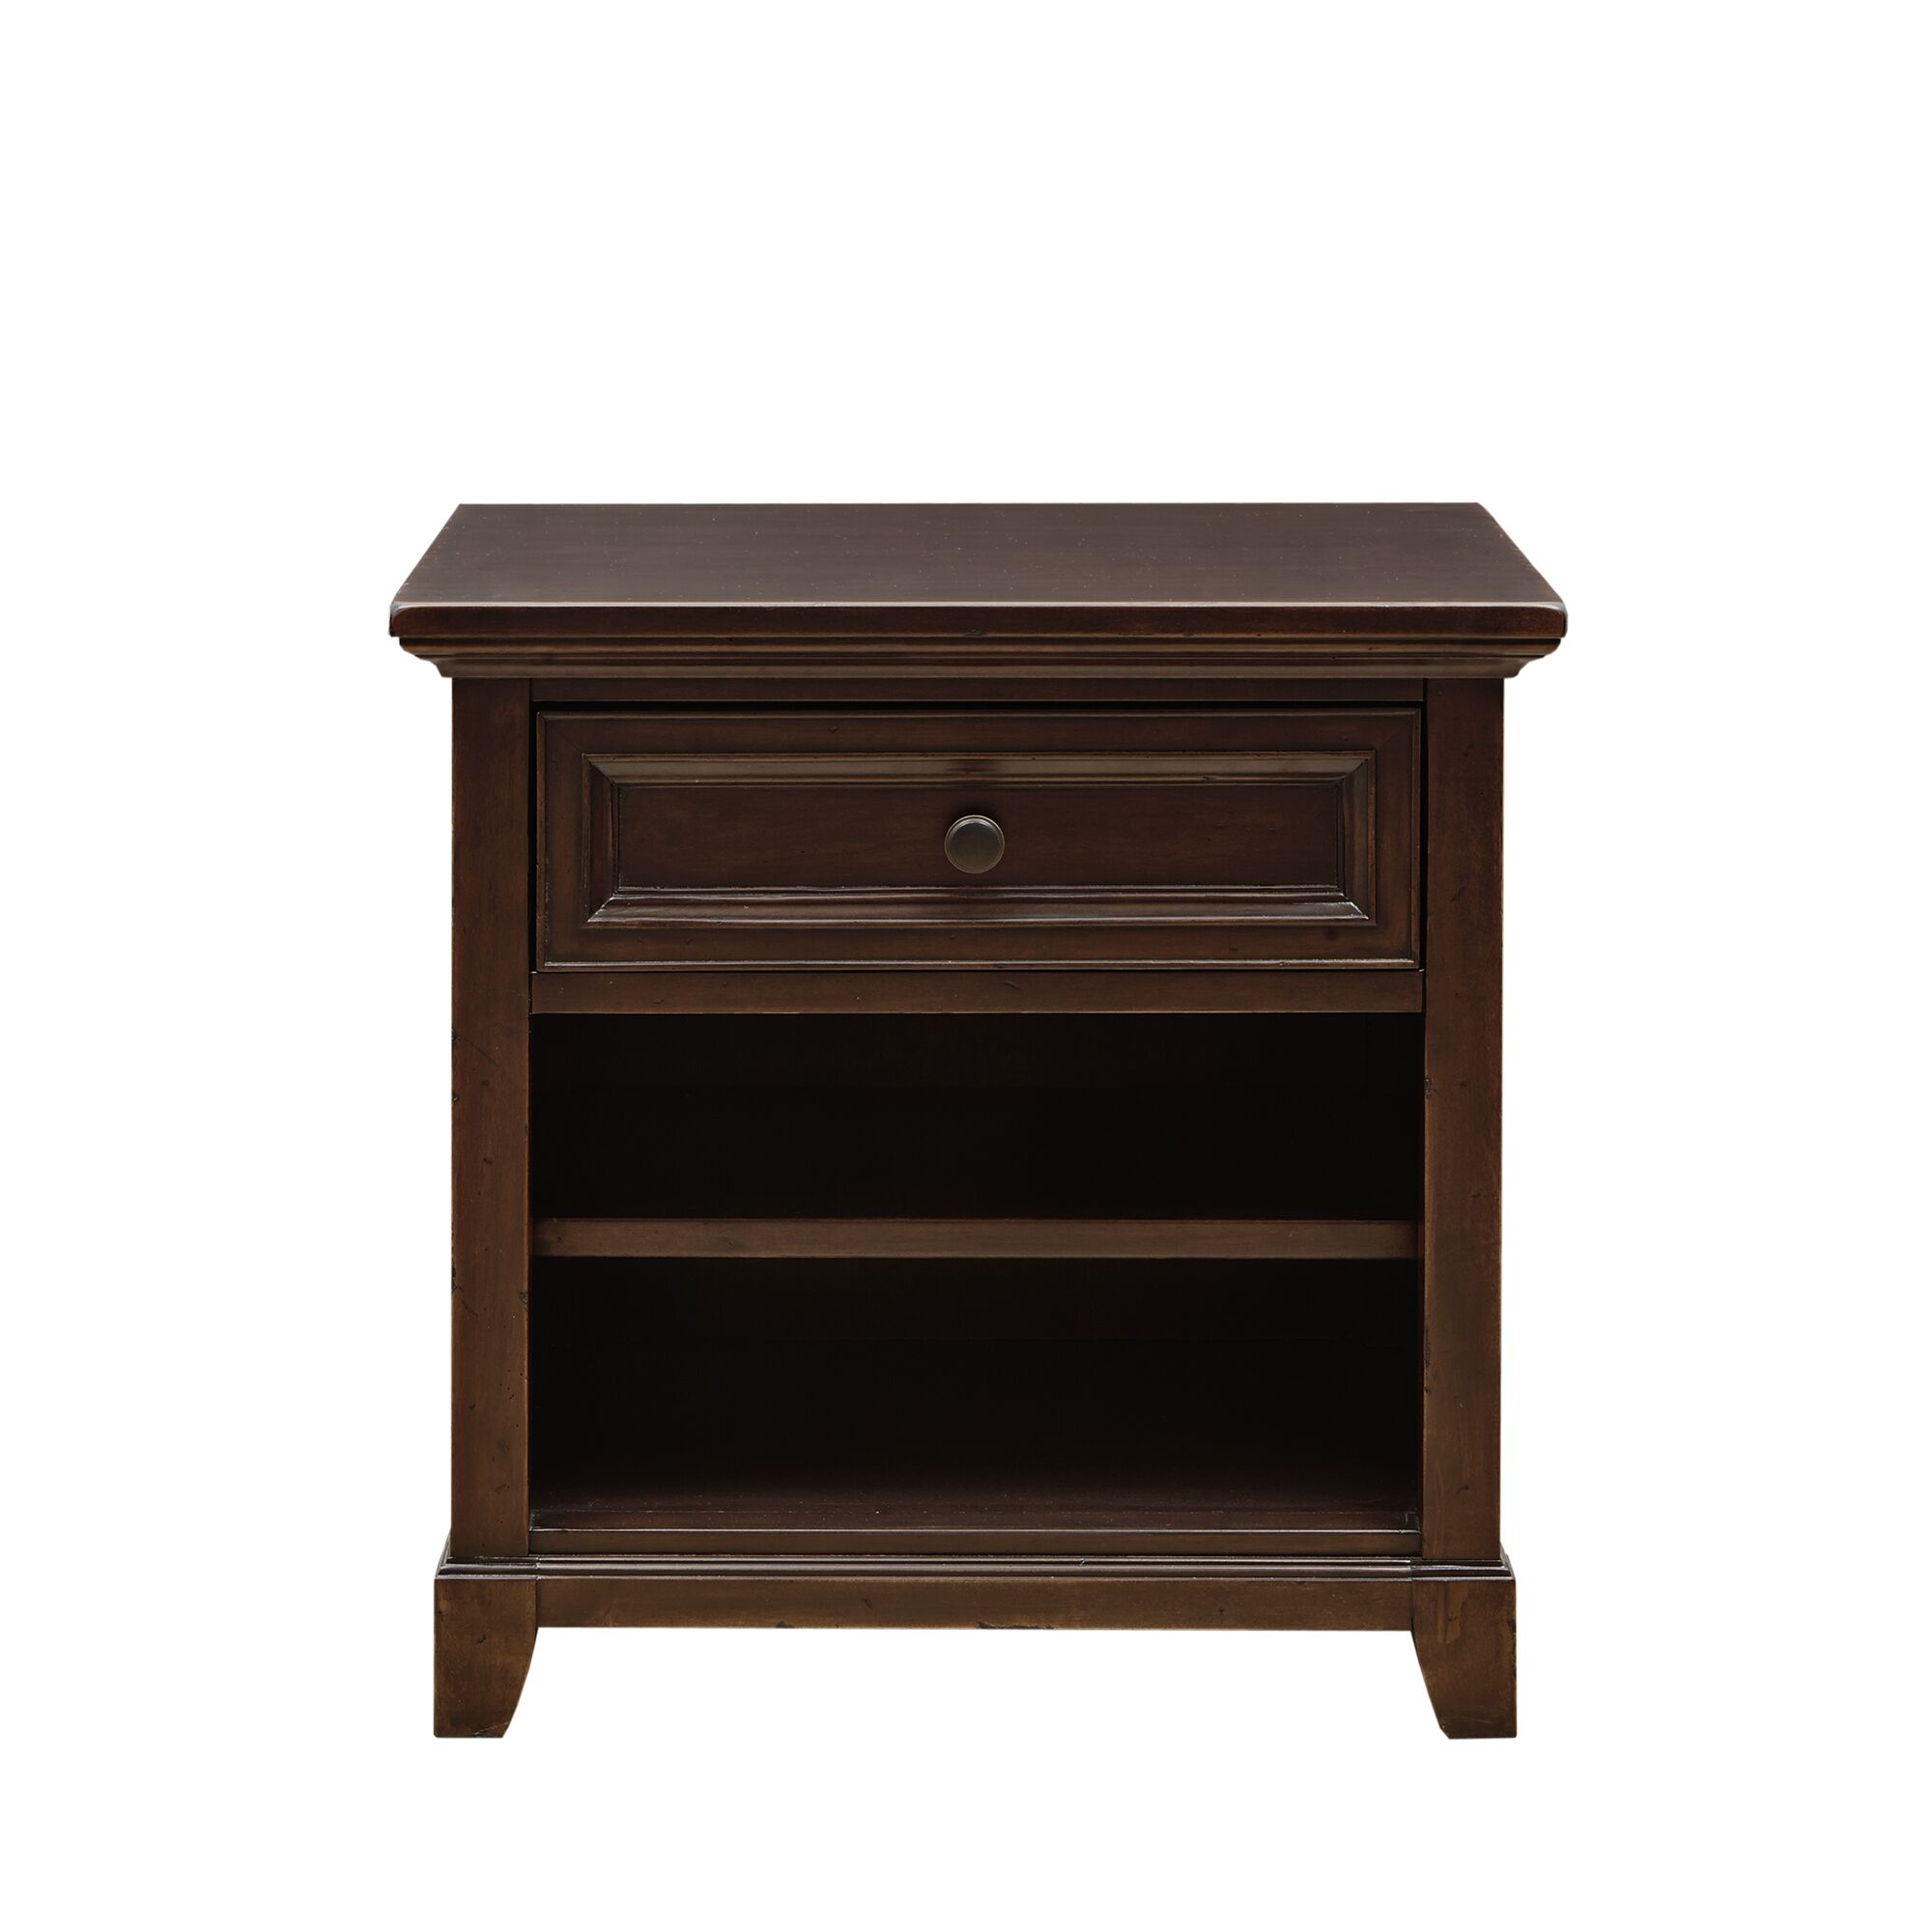 Montclair End Table with Storage